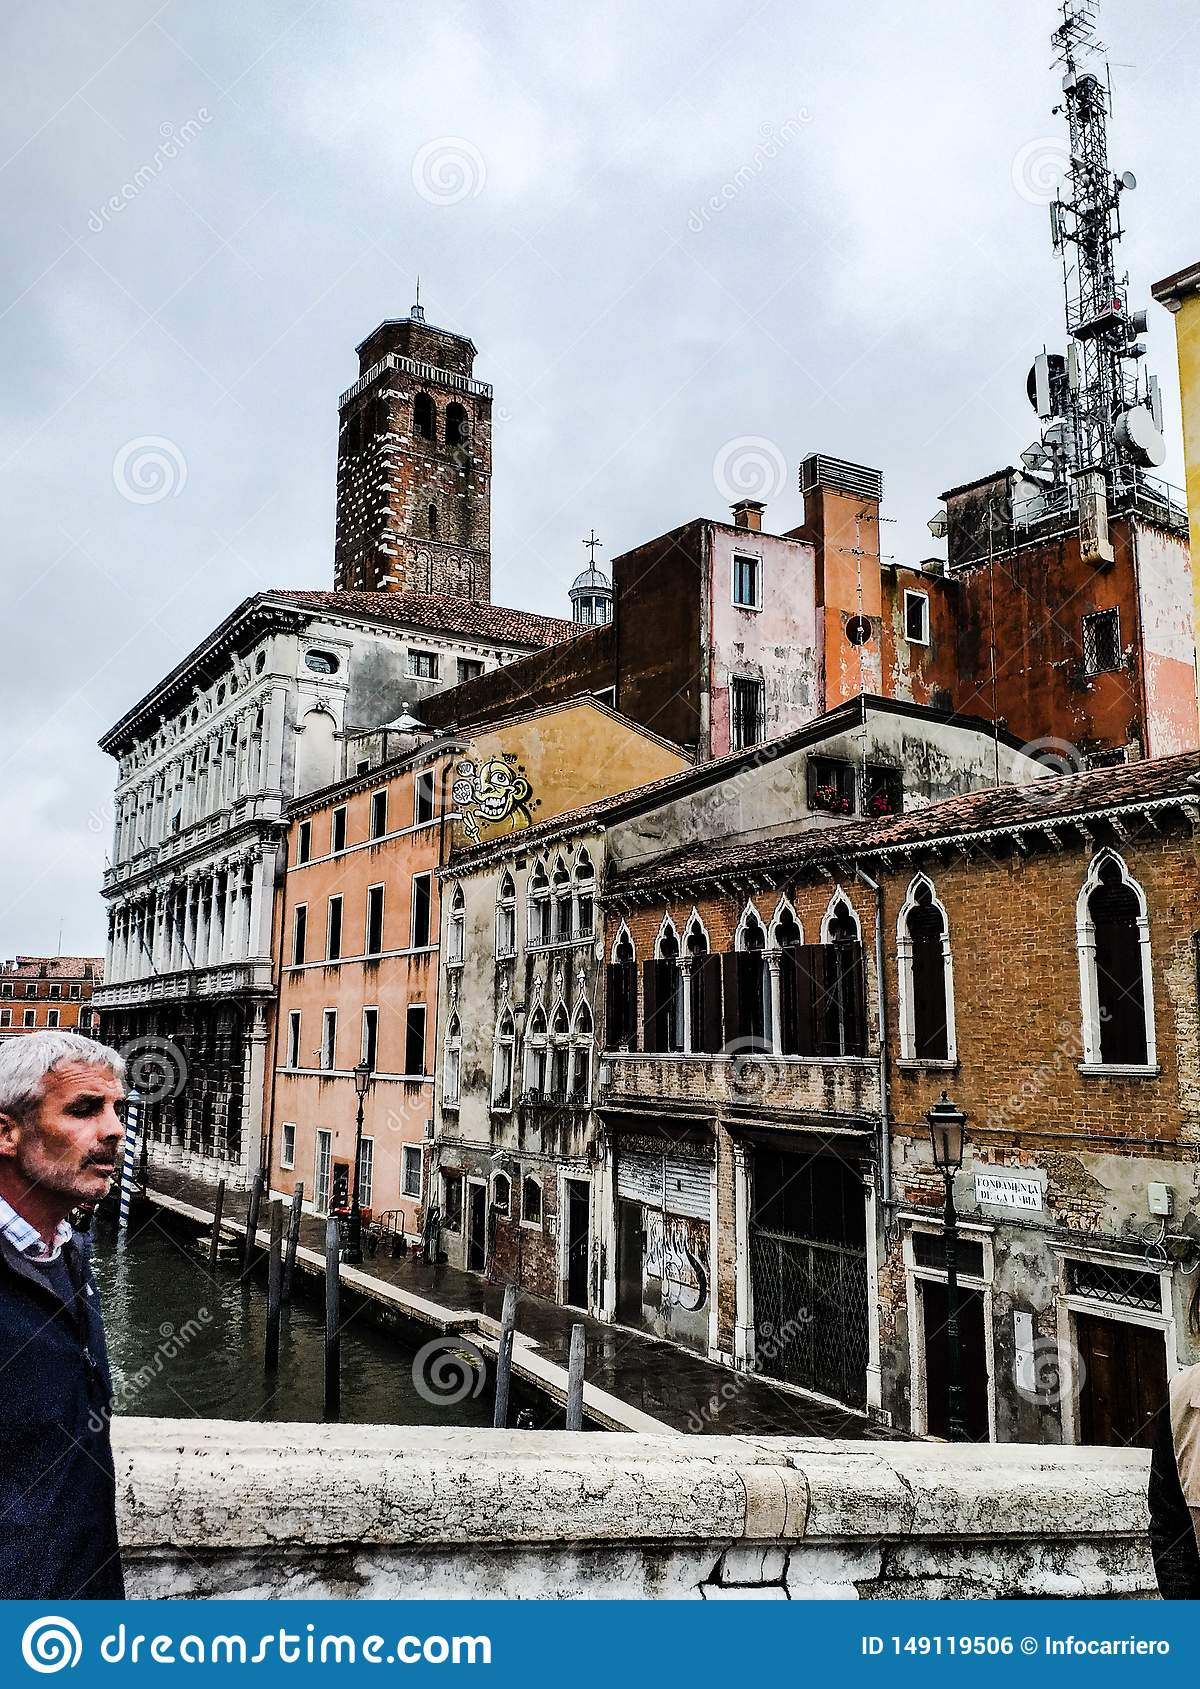 Venice. photos taken during a rainy day near the train station. images colored by the color of the wet walls that accentuate the